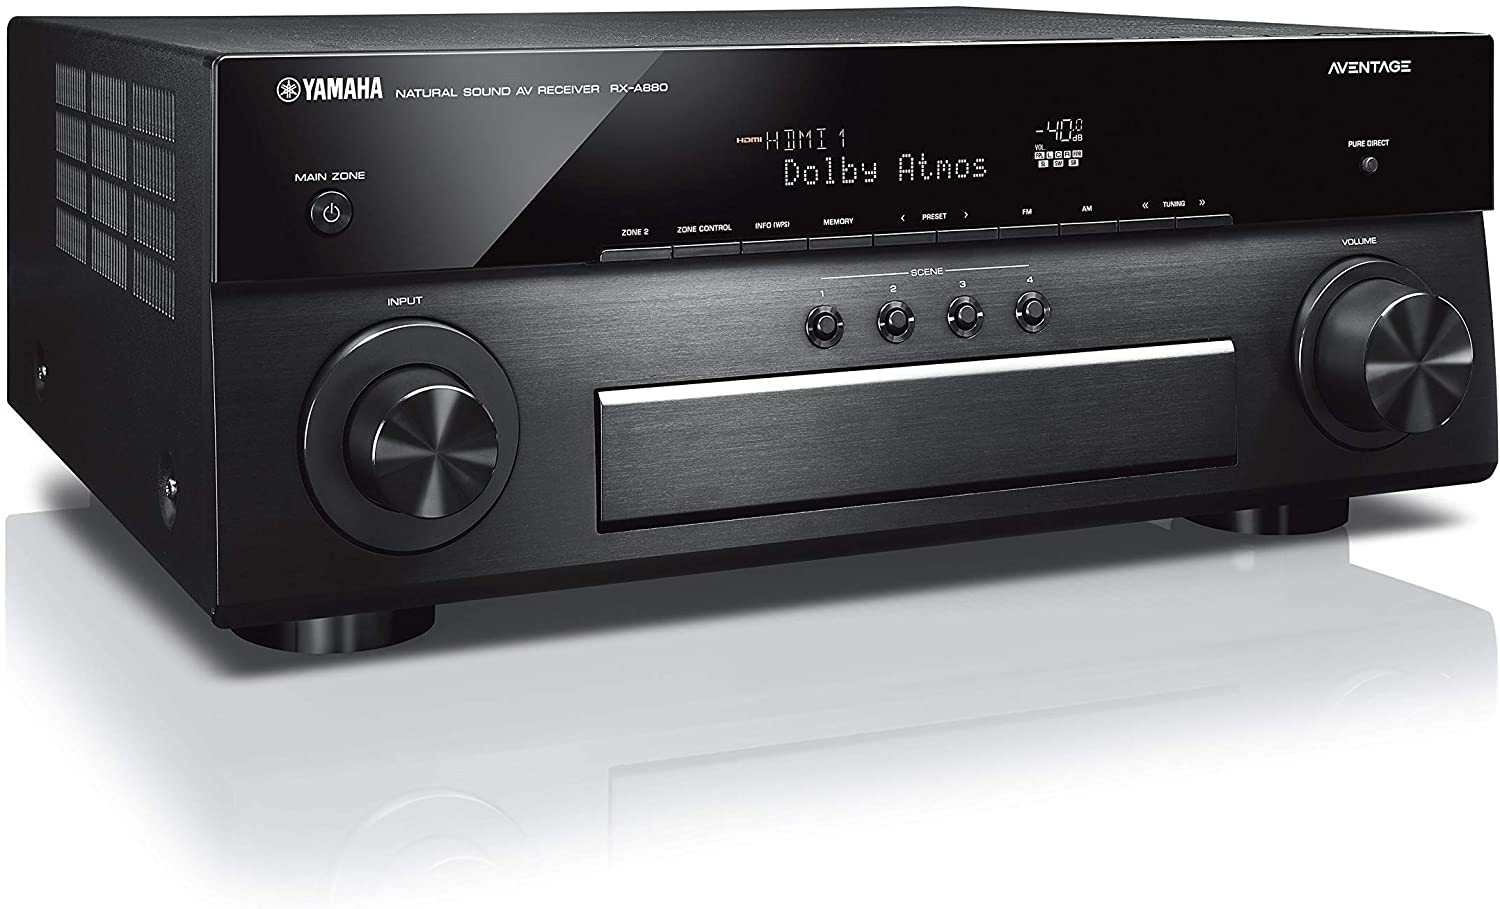 Yamaha Aventage RX-A880 7.2-ch 4K Receptor AV Ultra HD con HDR, Dolby Vision, Dolby Atmos, Wi-Fi, Phono, YPAO y MusicCast. Funciona con Alexa